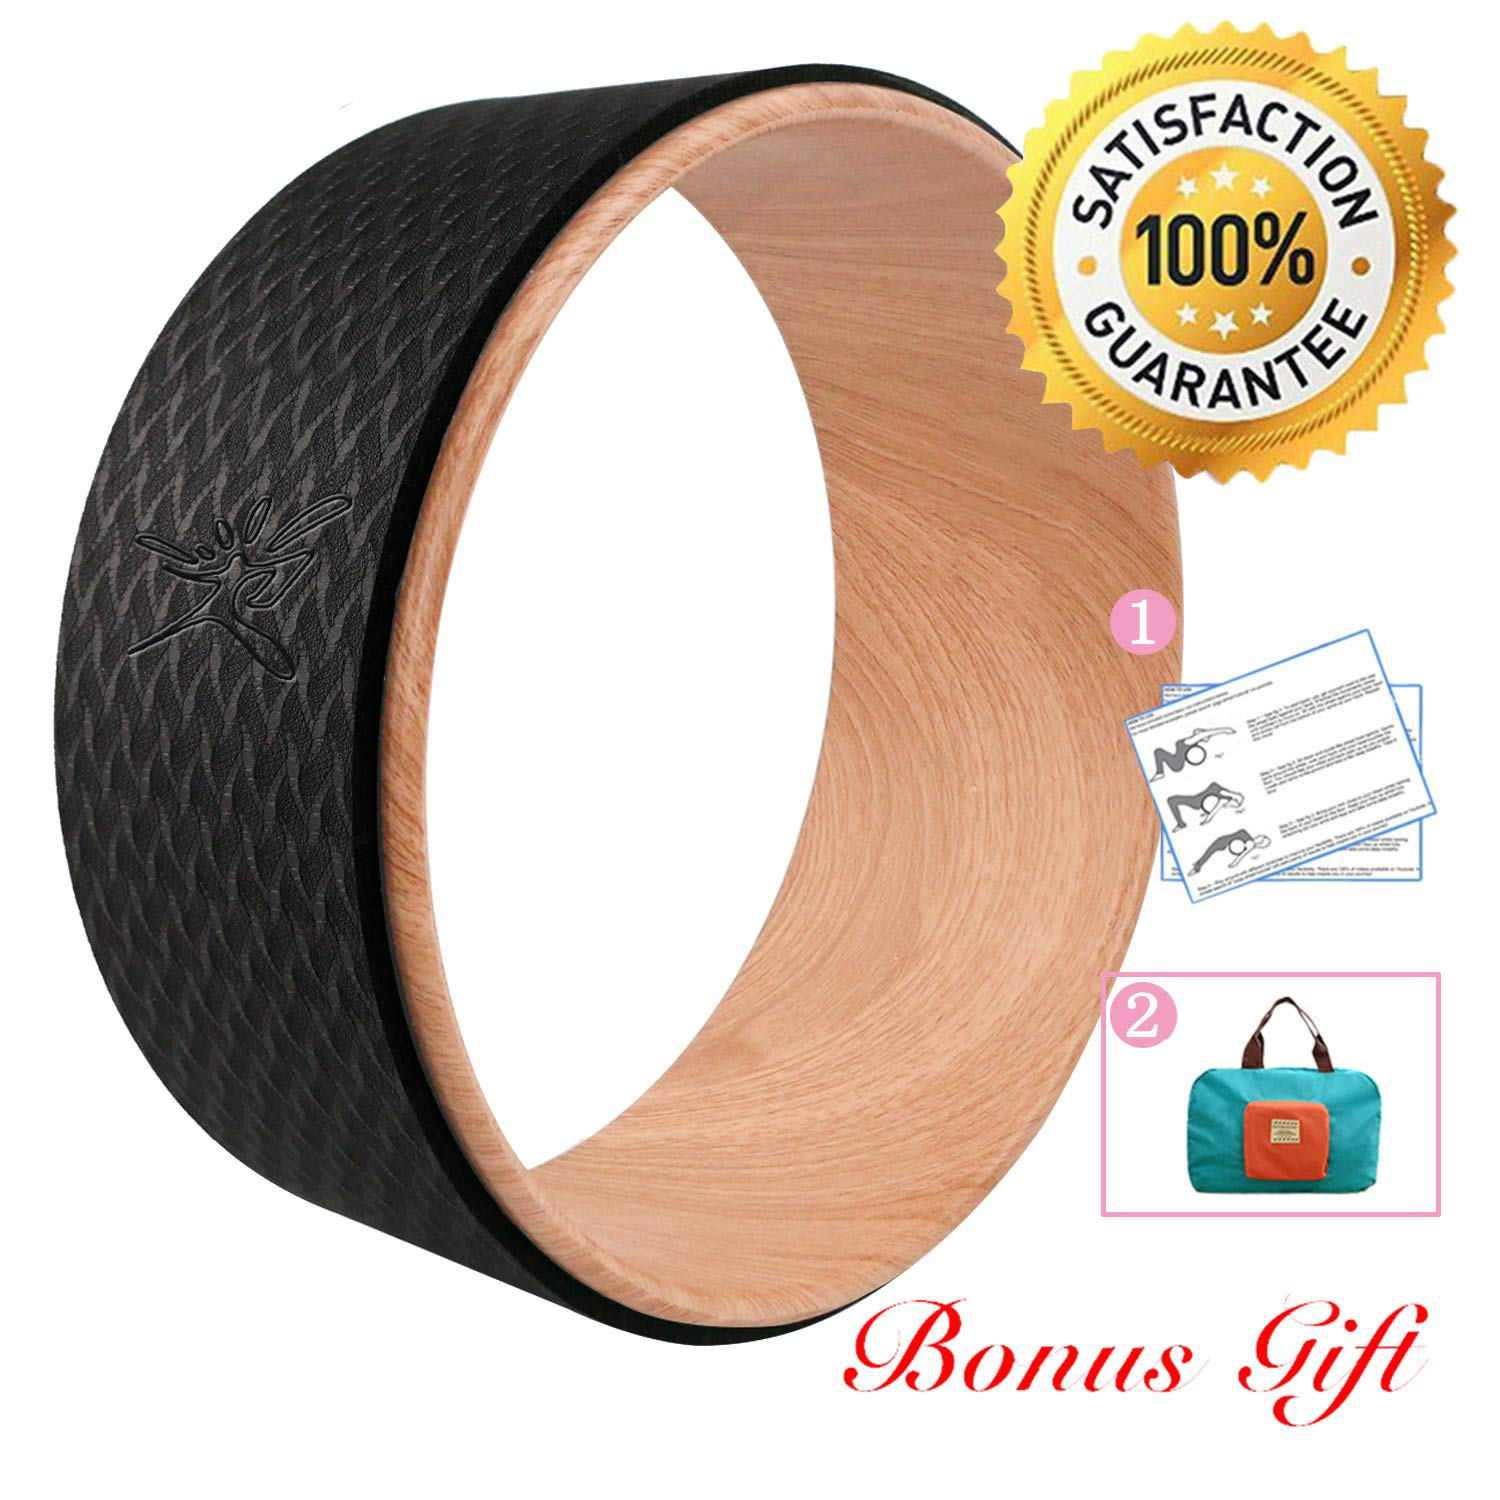 seeknfind 13 x 5 Inch Basic Yoga Wheel - Strongest & Comfortable Dharma Yoga Prop Wheel for All Yoga Poses Perfect Accessory for Stretching Increasing Flexibility and Improving Backbends (8)